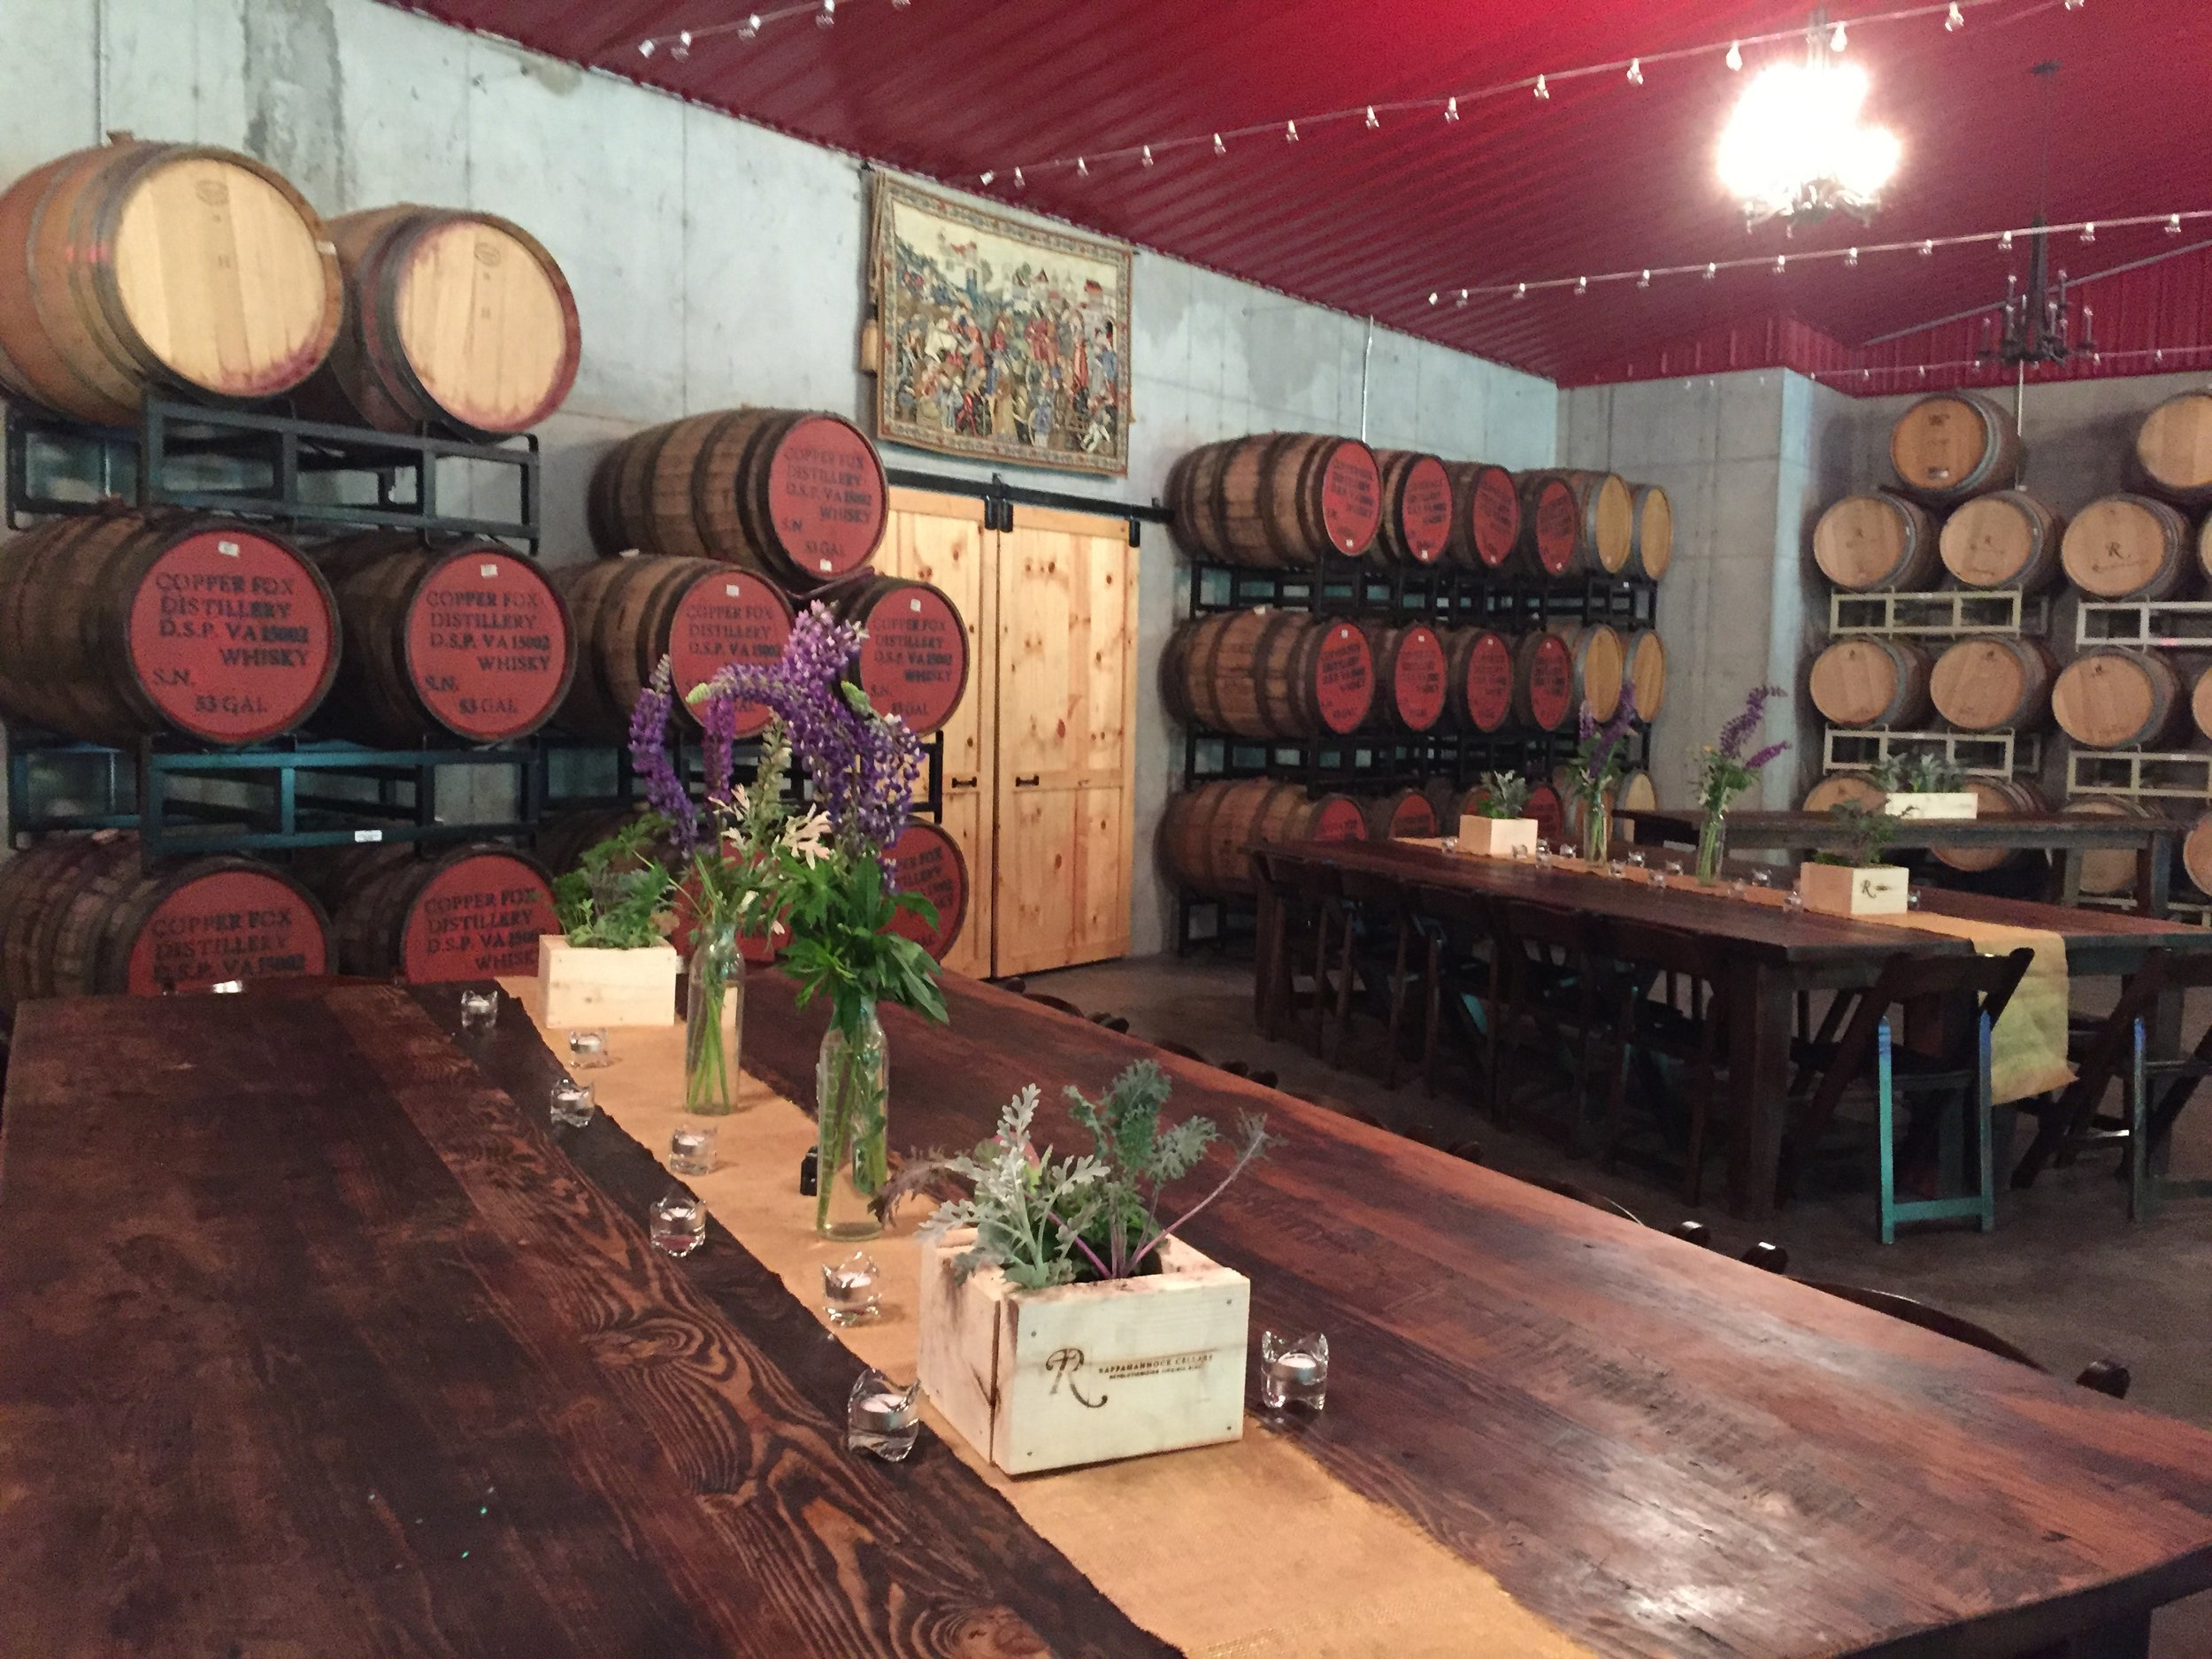 The Barrel Room looked rustic and lovely